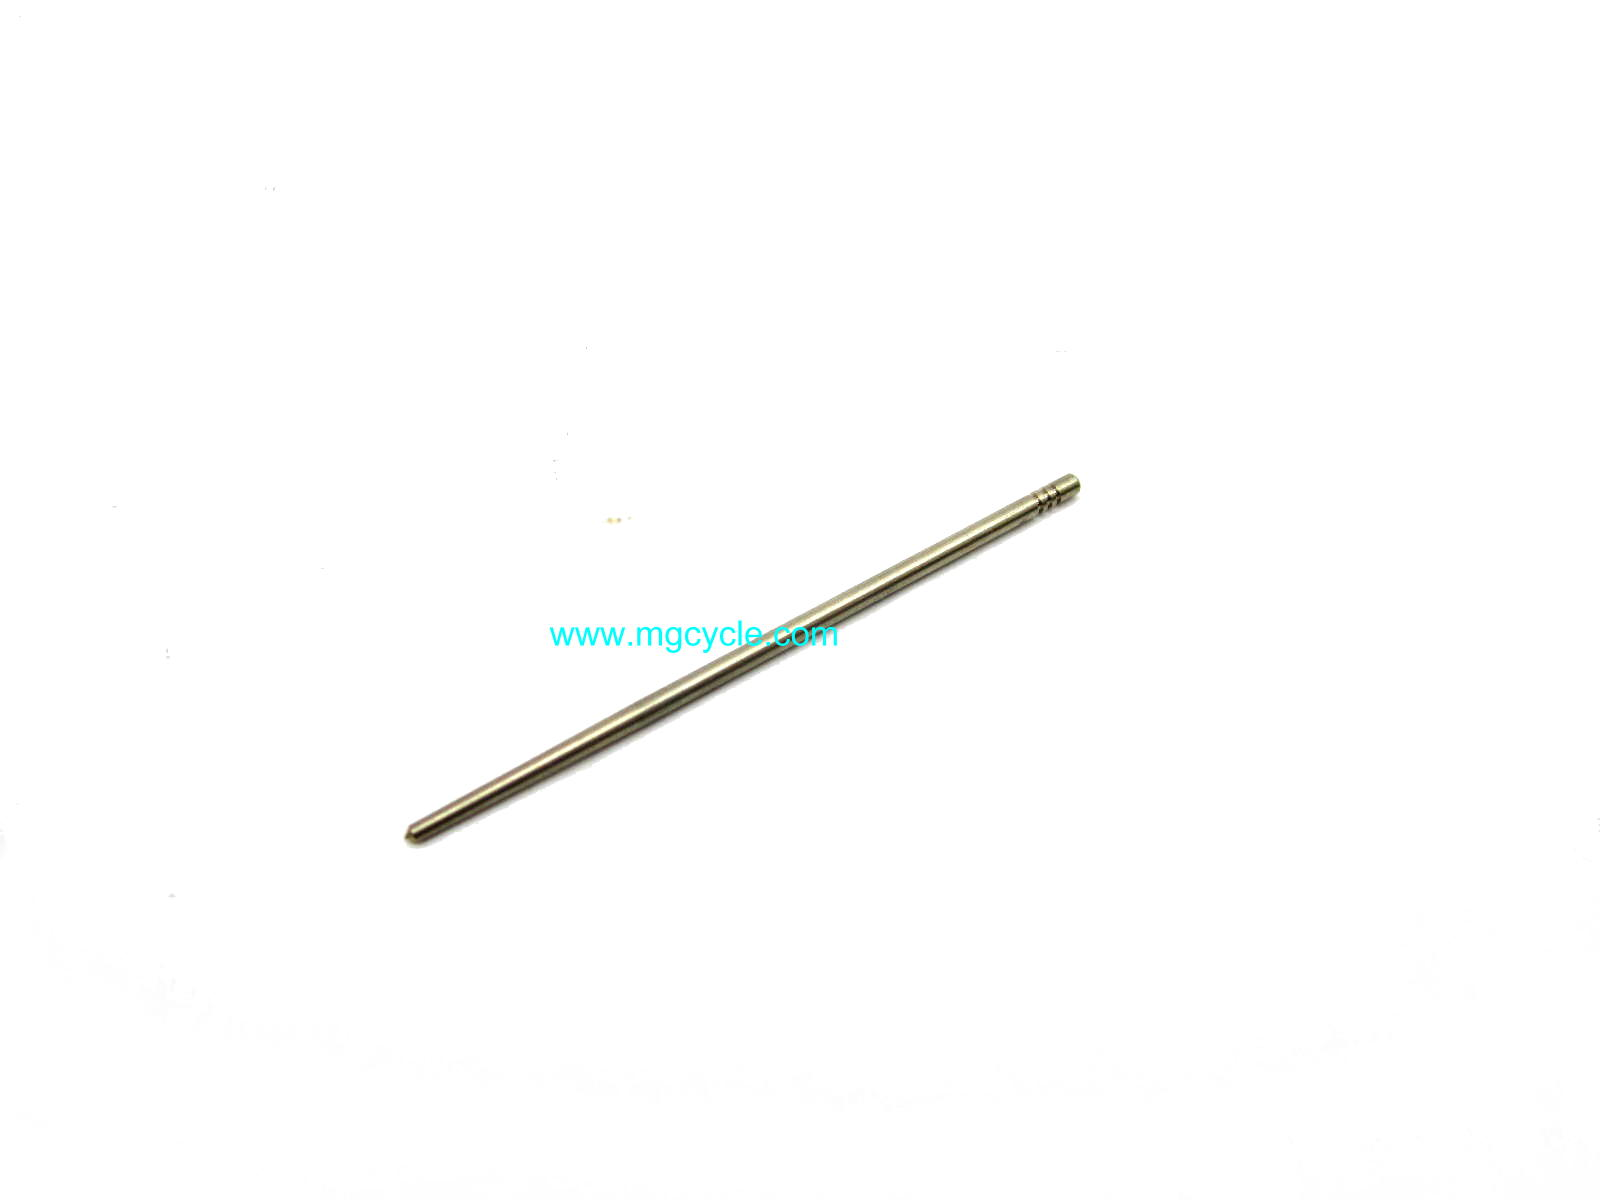 Dellorto 7455 V9 taper slide needle for VHB carburetors